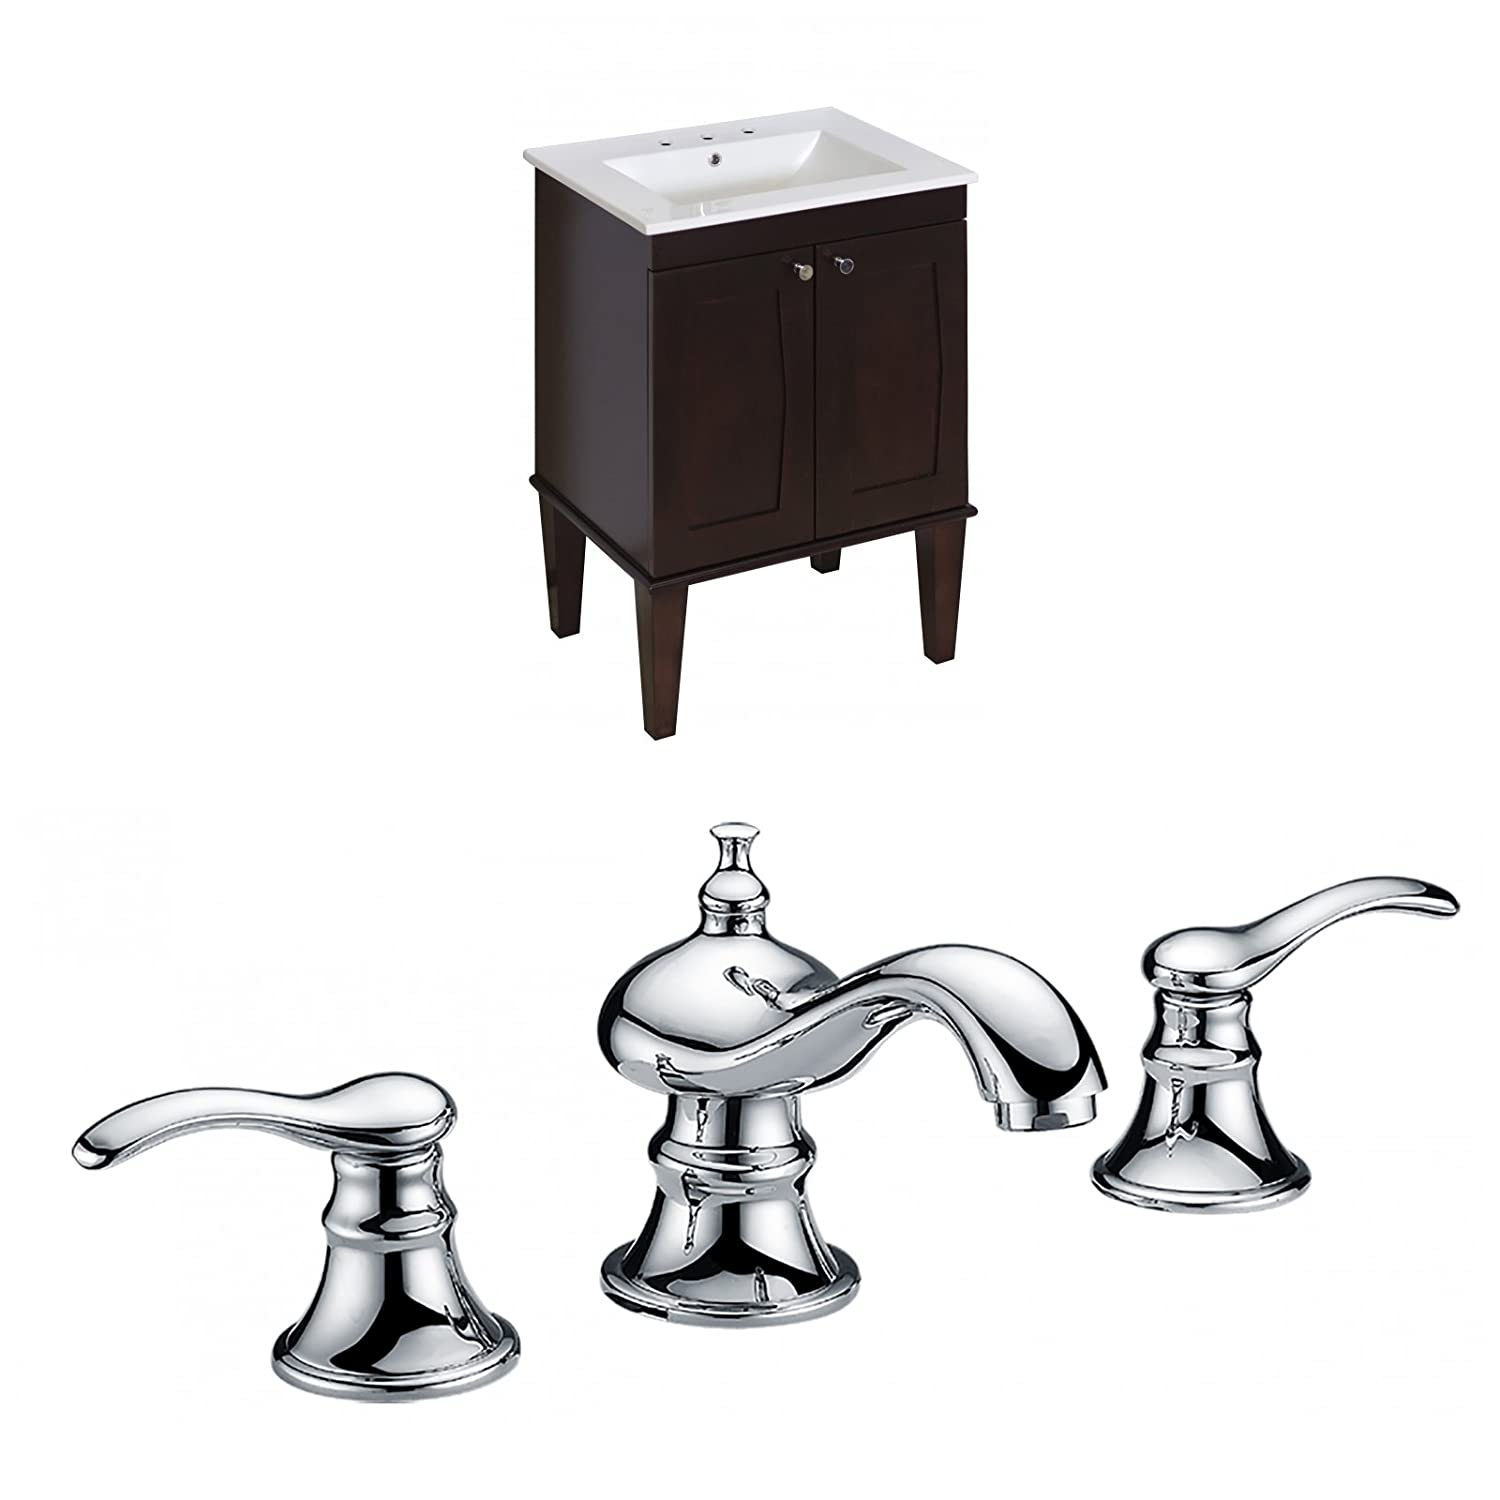 "Jade Bath JB-8085 24"" W x 18"" D Birch Wood-Veneer Vanity Set with 8"" o.c. CUPC Faucet, Antique Walnut high-quality"